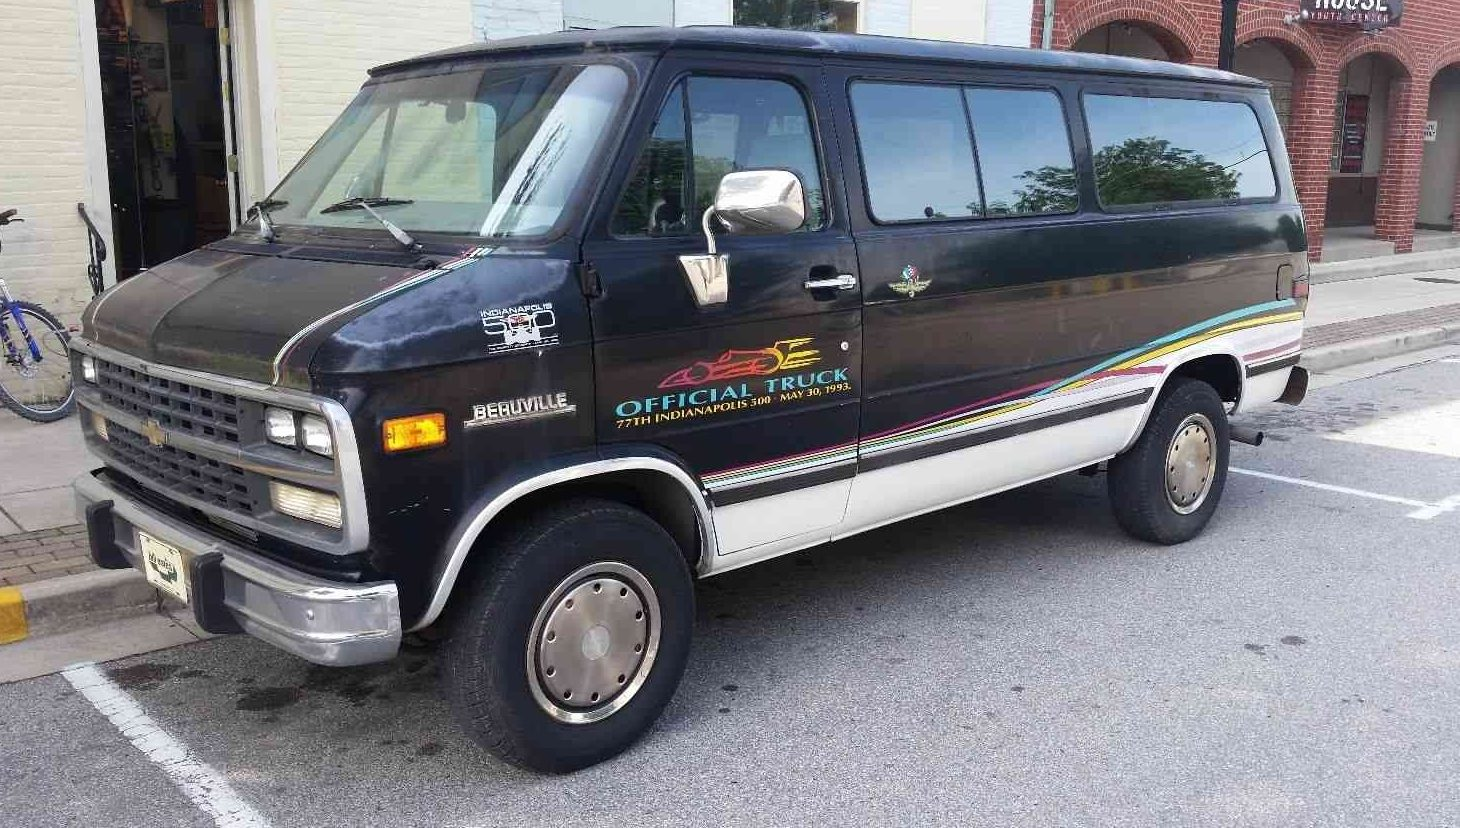 Chevy Dealership Indianapolis >> Real or Fake? Church-Owned Chevy G20 Pace Van